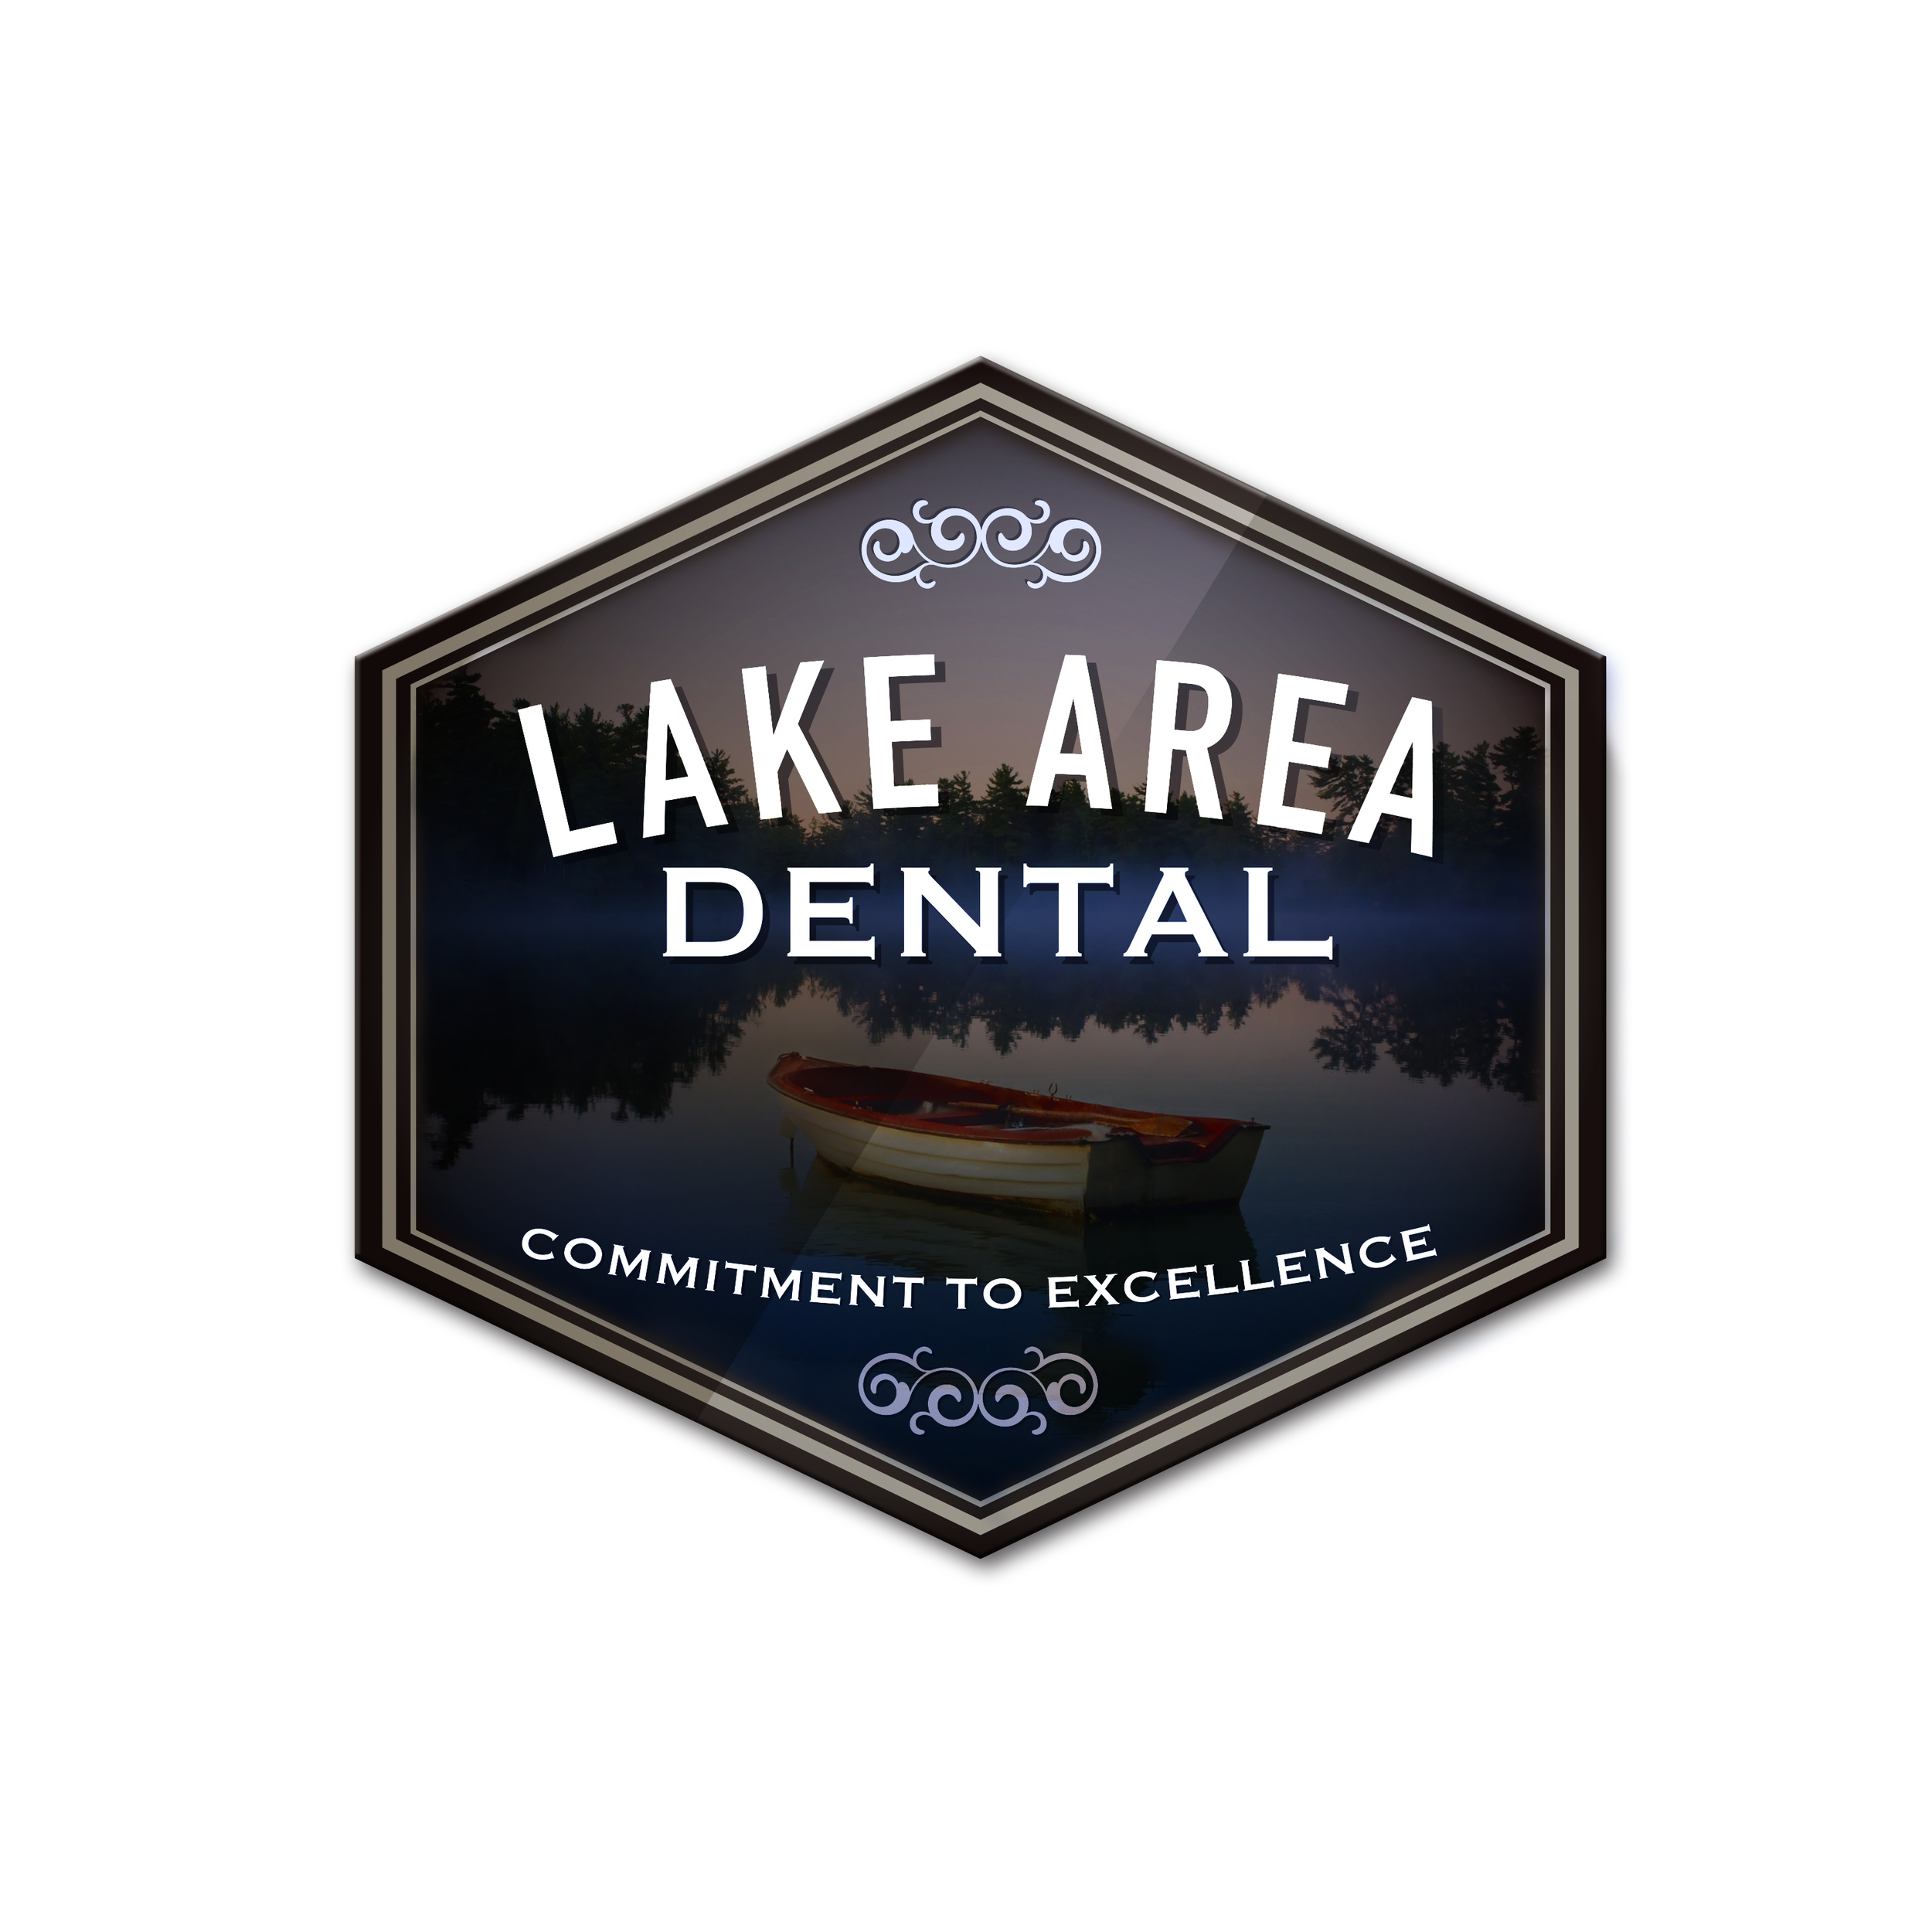 LakeAreaDental.jpg